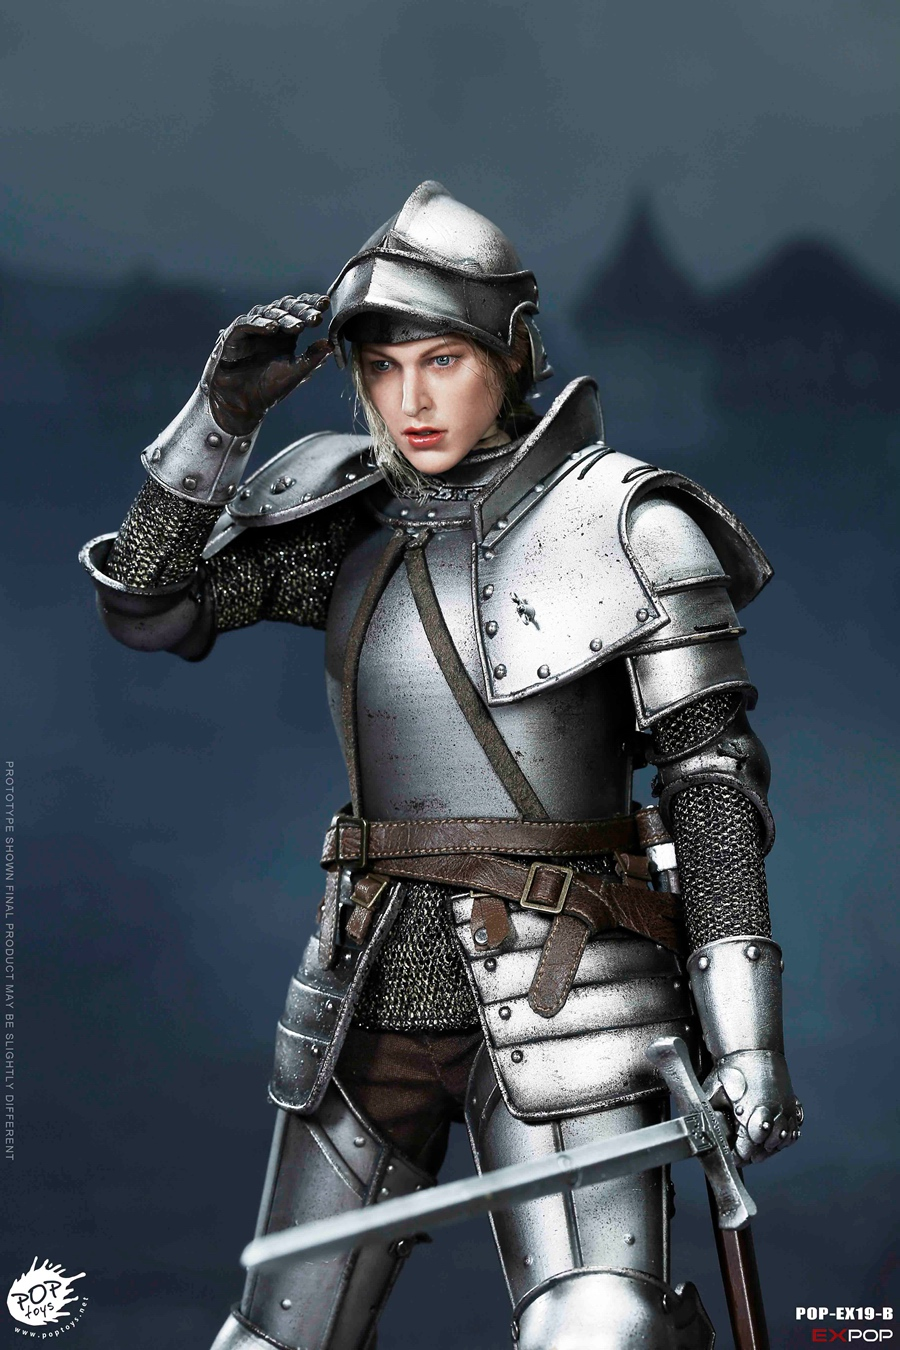 knight - NEW PRODUCT: POPTOYS New Products: 1/6 St. Knights - Assault Edition & Triumph Edition & Iron Armor (POP-EX19 ABC) 16461310